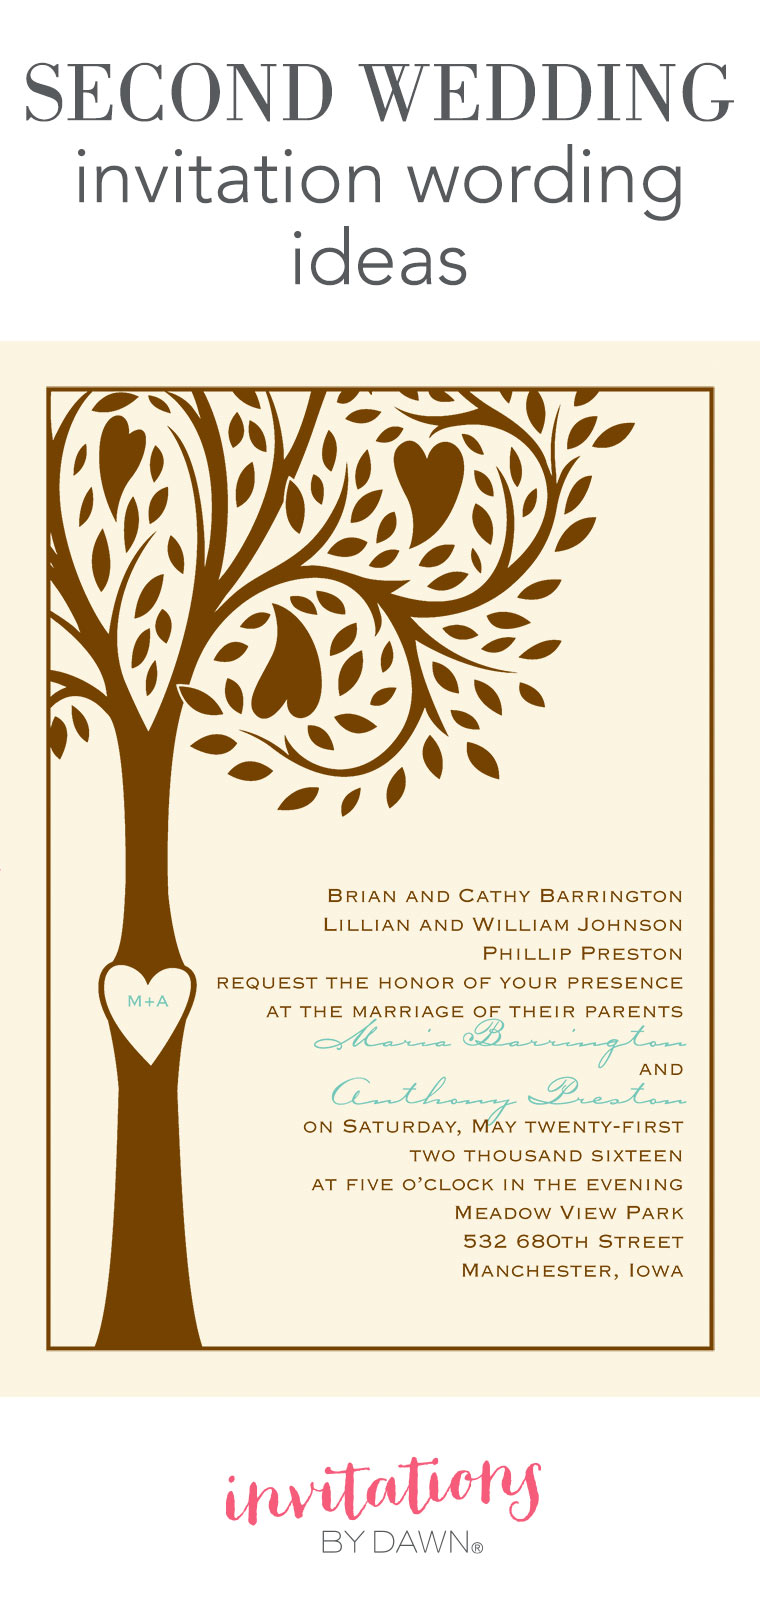 Second wedding invitation wording invitations by dawn second wedding invitation wording stopboris Gallery